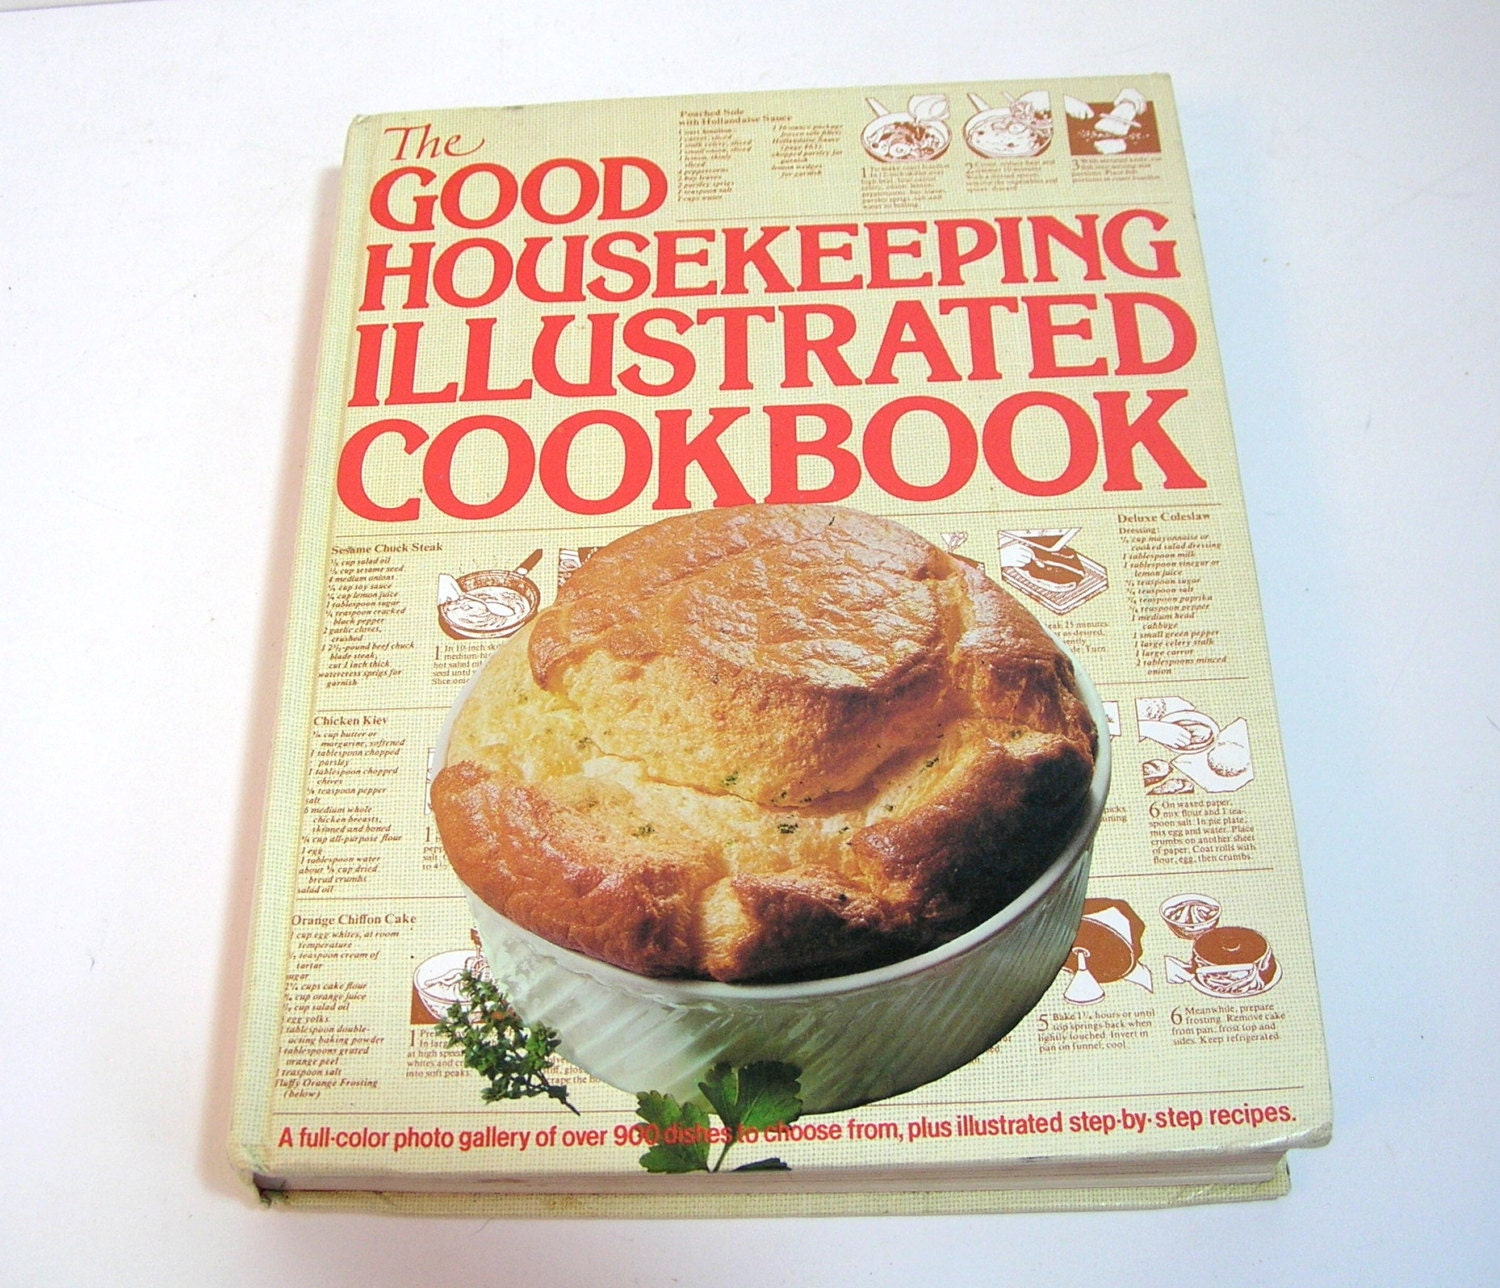 Good Housekeeping: The Good Housekeeping Illustrated Cookbook By BountifulBooks